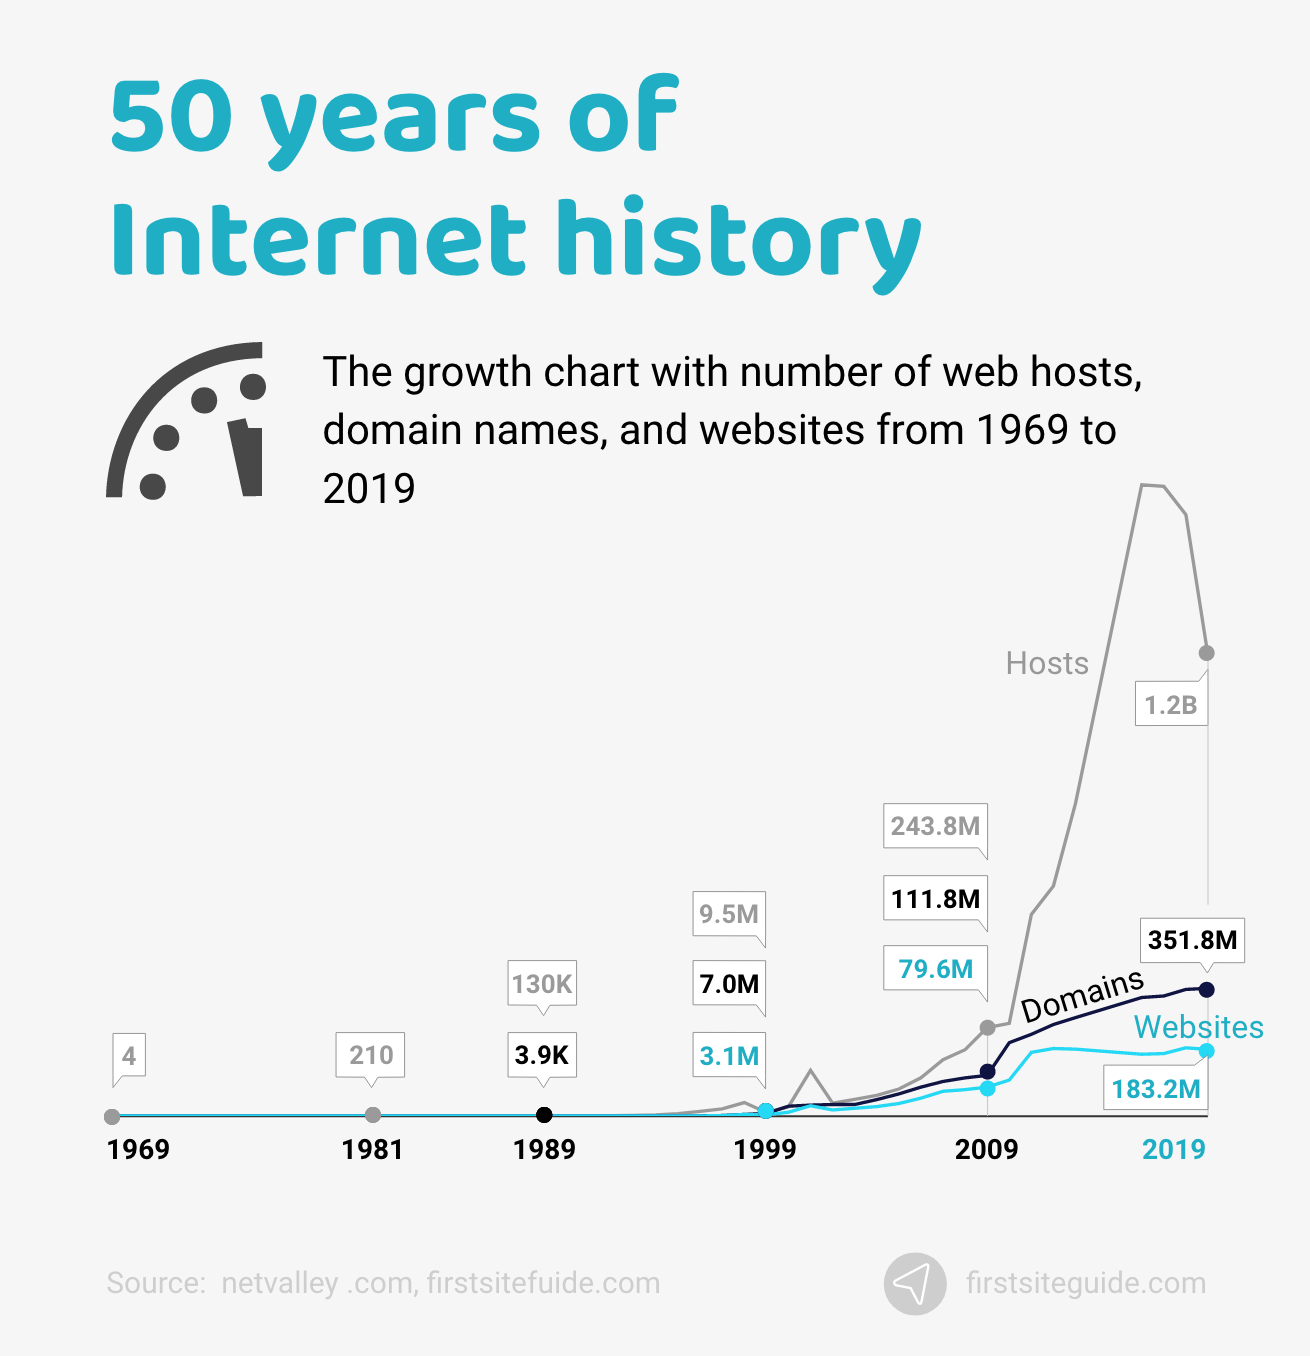 50 years of Internet history